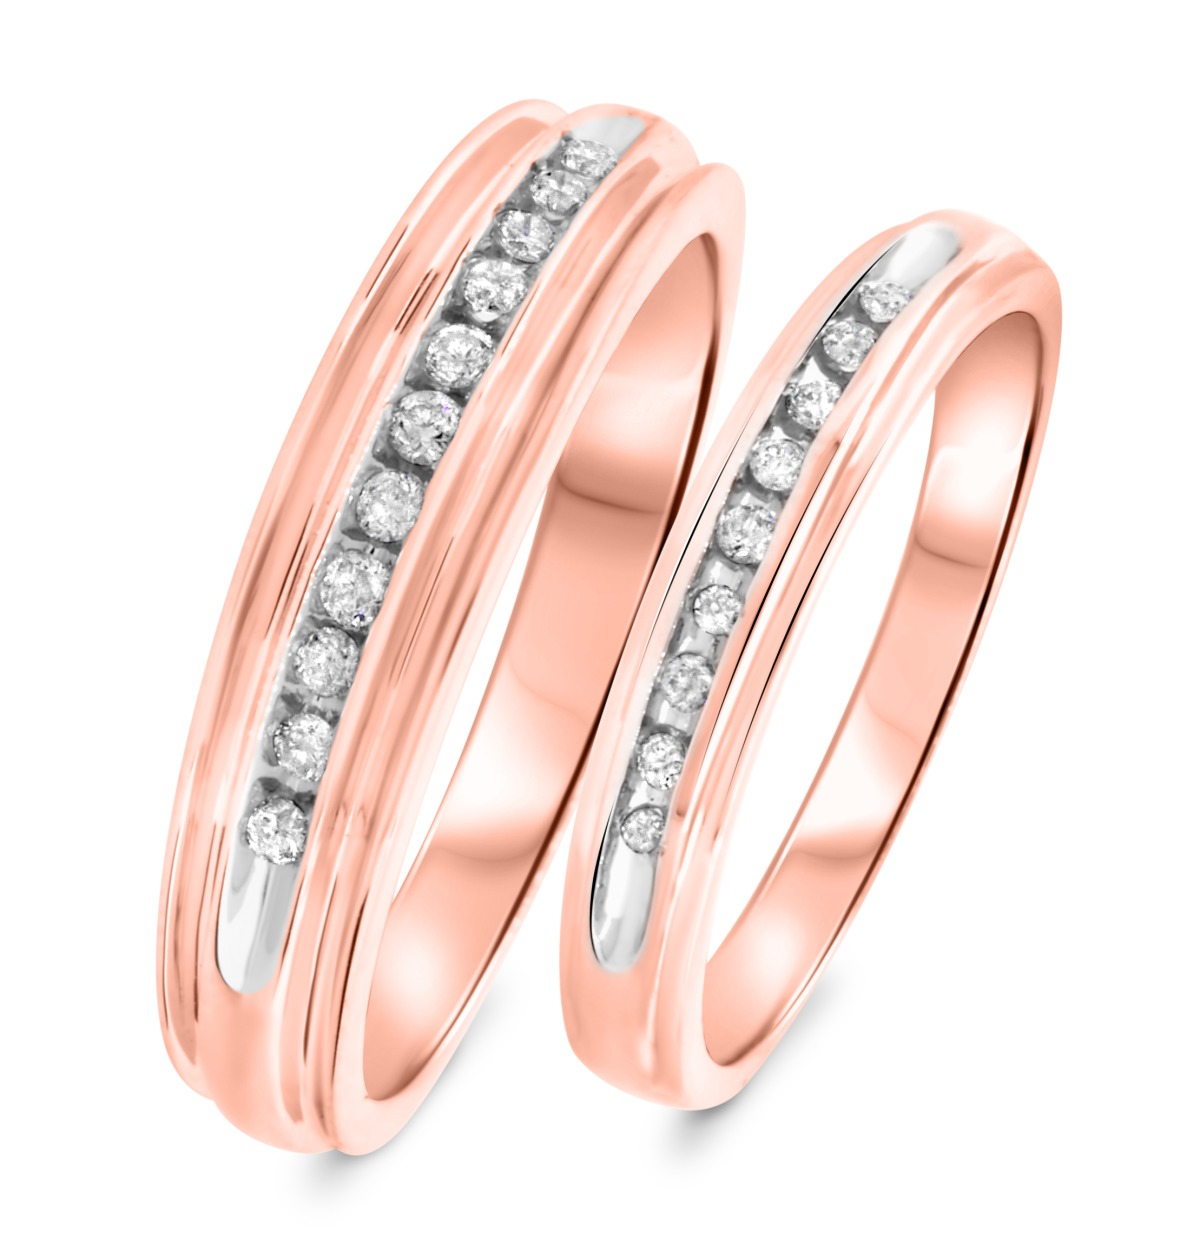 1/3 CT. T.W. Diamond His And Hers Wedding Band Set 14K Rose Gold